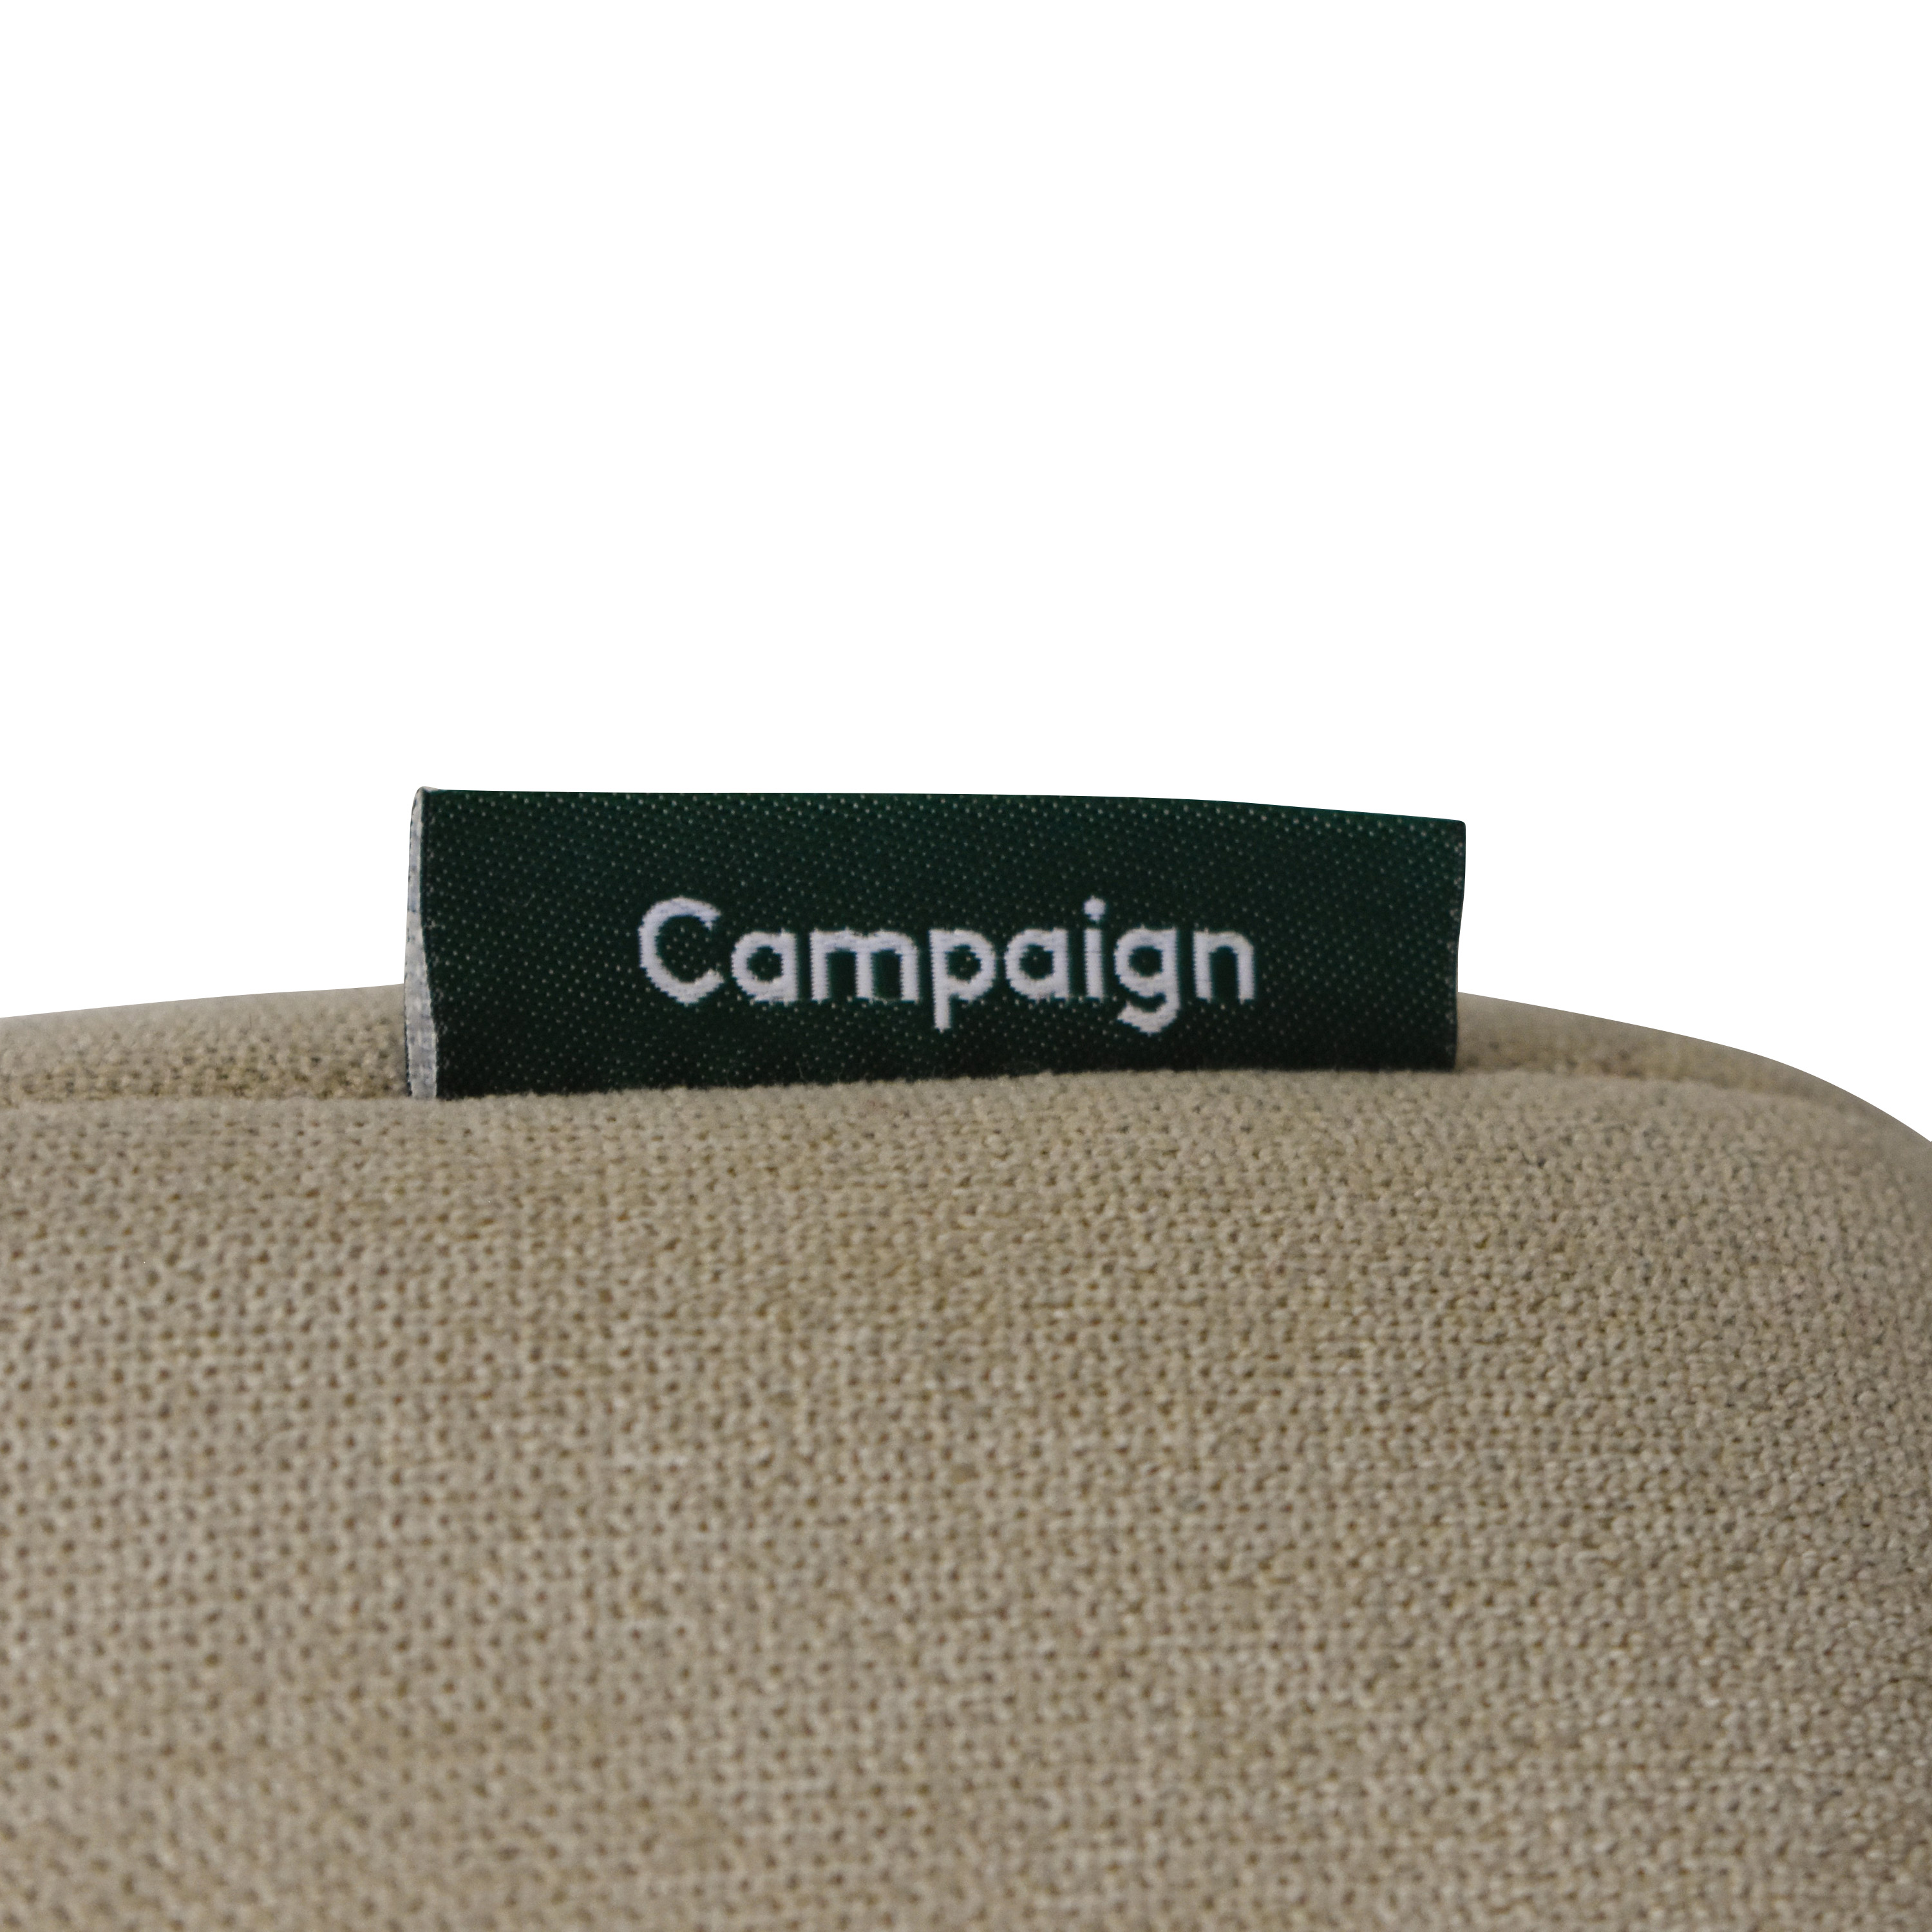 Campaign Campaign Modern Sectional Sofa second hand